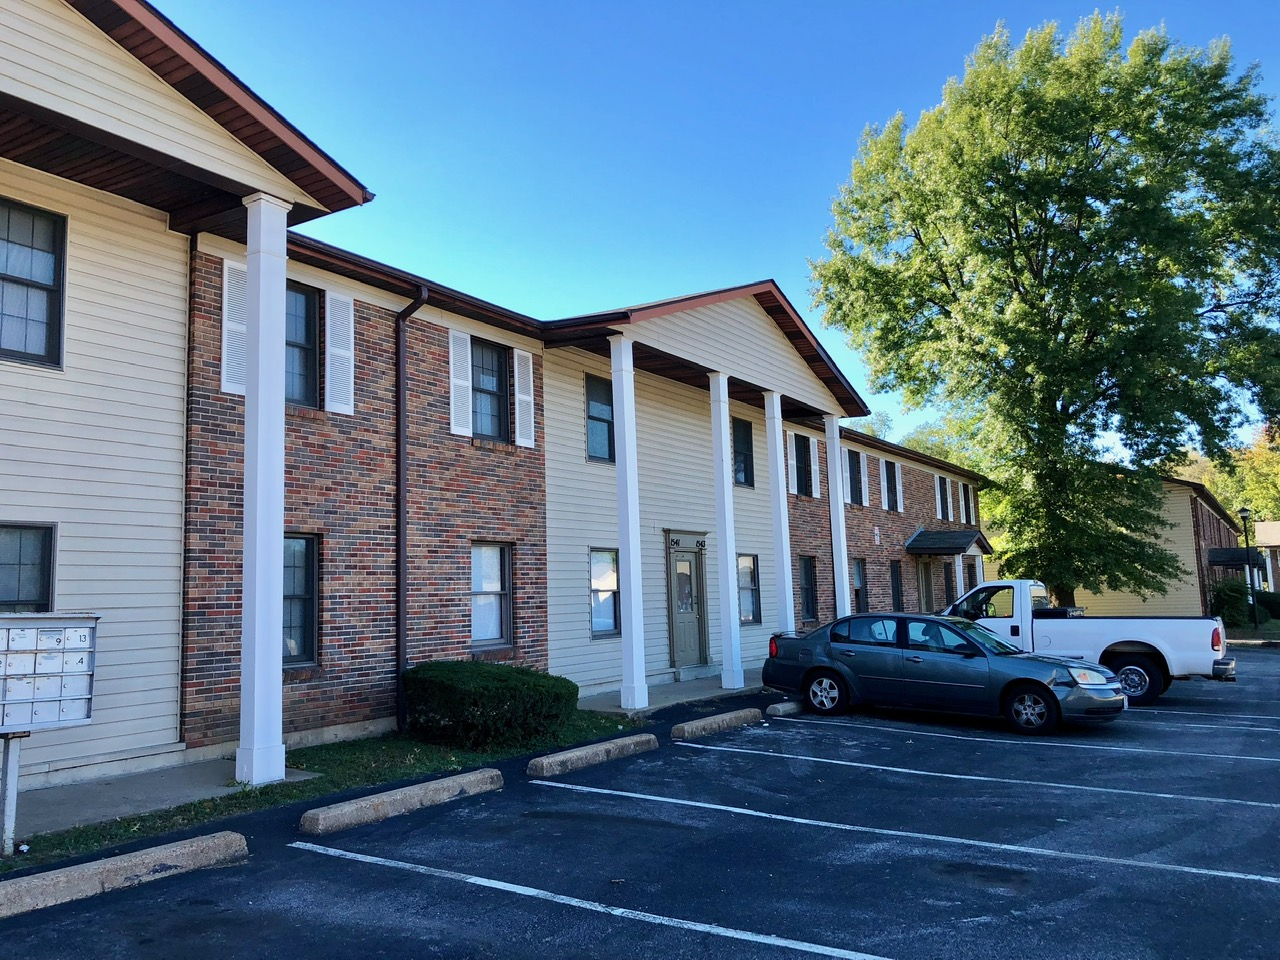 Multifamily real estate investment in St. Louis, Missouri